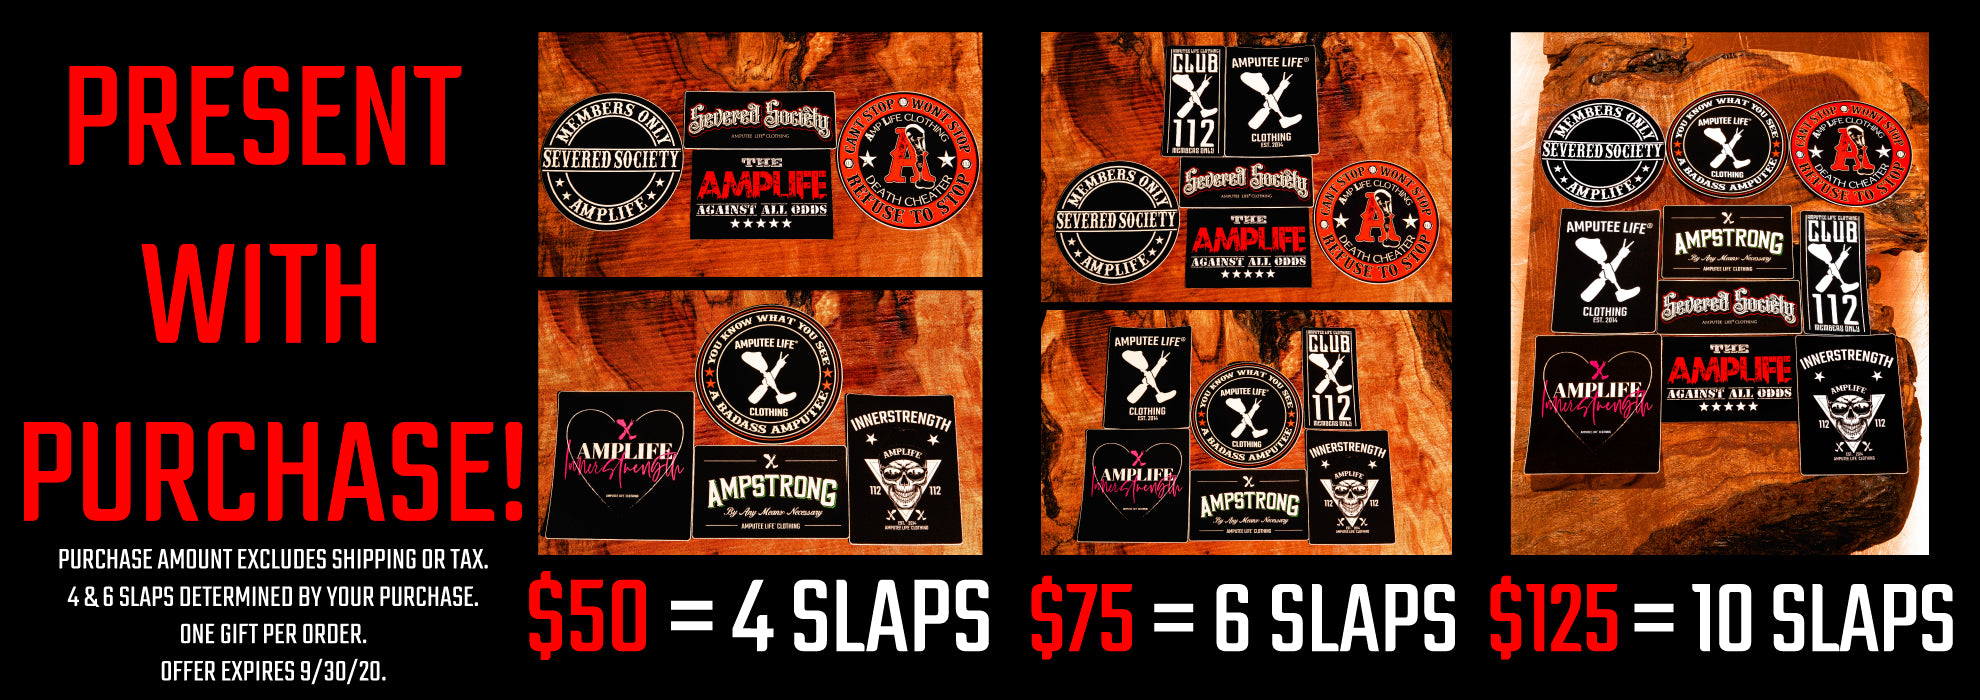 PRESENT WITH PURCHASE! $50 = 4 SLAPS. $75 = 6 SLAPS. $125 = 10 SLAPS. PURCHASE AMOUNT EXCLUDES SHIPPING OR TAX. 4&6 SLAPS DETERMINED BY YOUR PURCHASE. ONE GIFT PER ORDER. OFFER EXPIRES 9/30/20